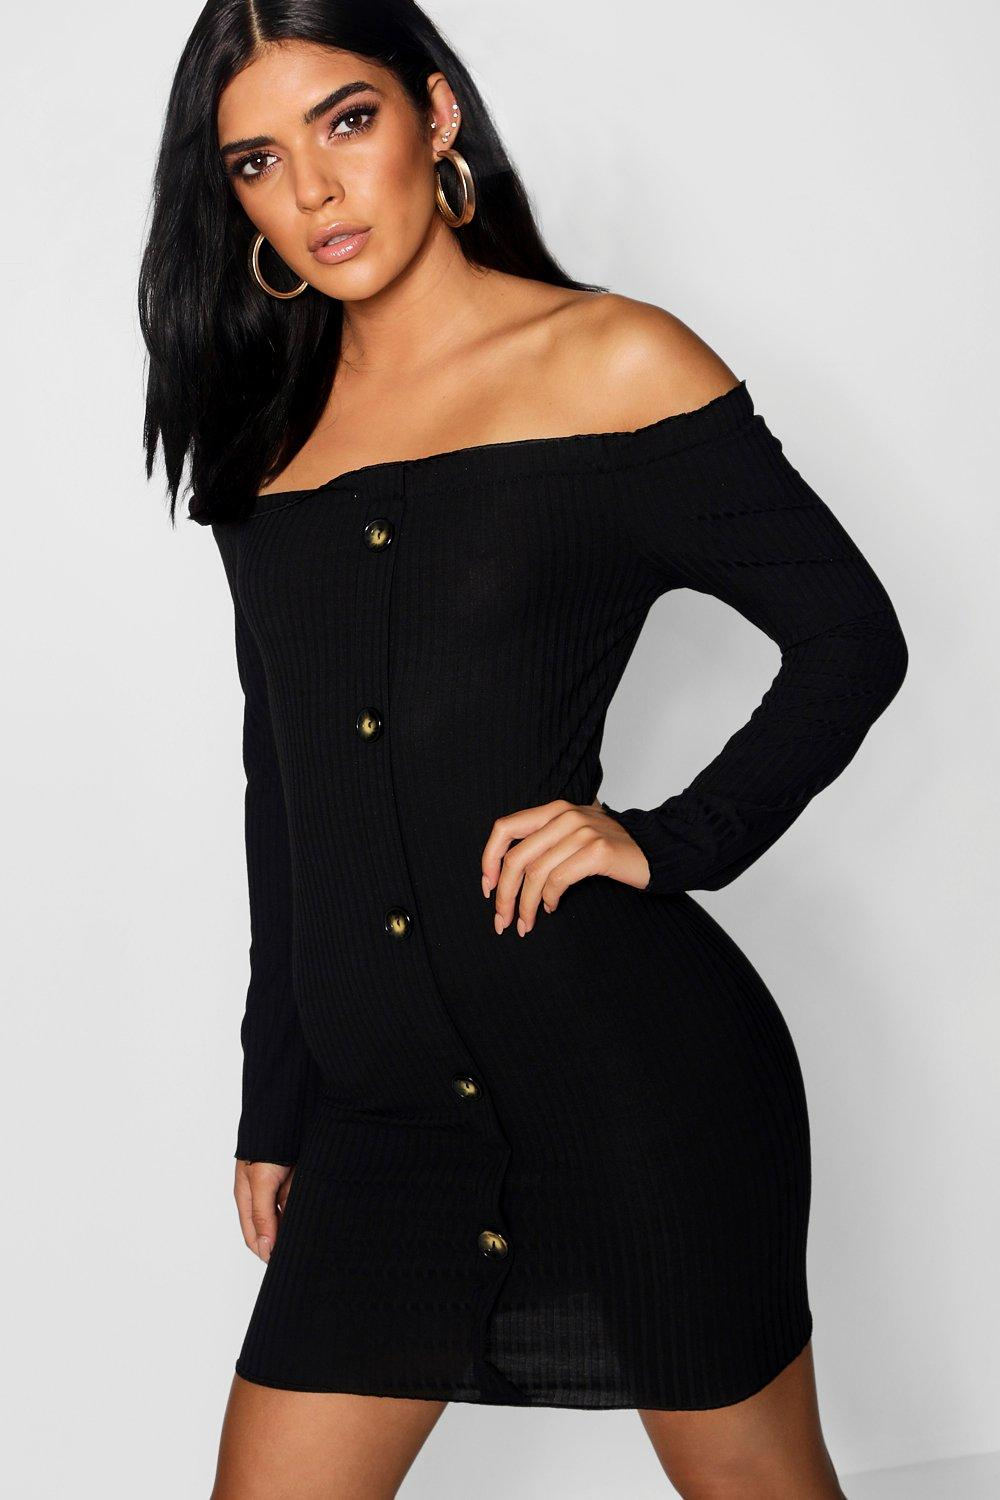 6d377c4ee3 Horn Button Off The Shoulder Rib Dress. Hover to zoom